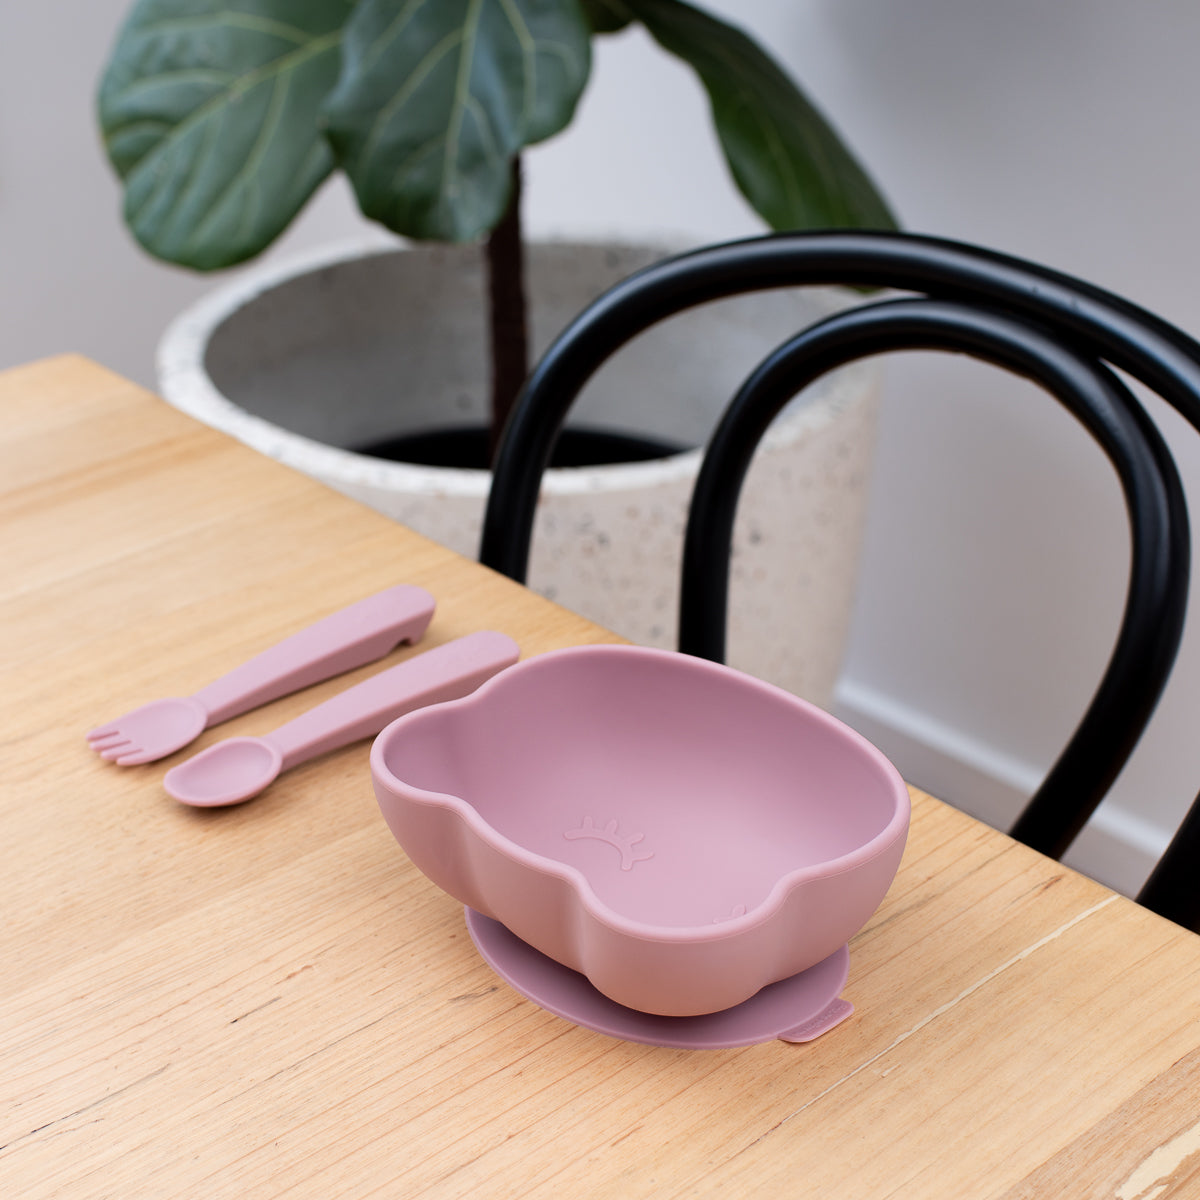 Stickie™ Bowl - Dusty Rose